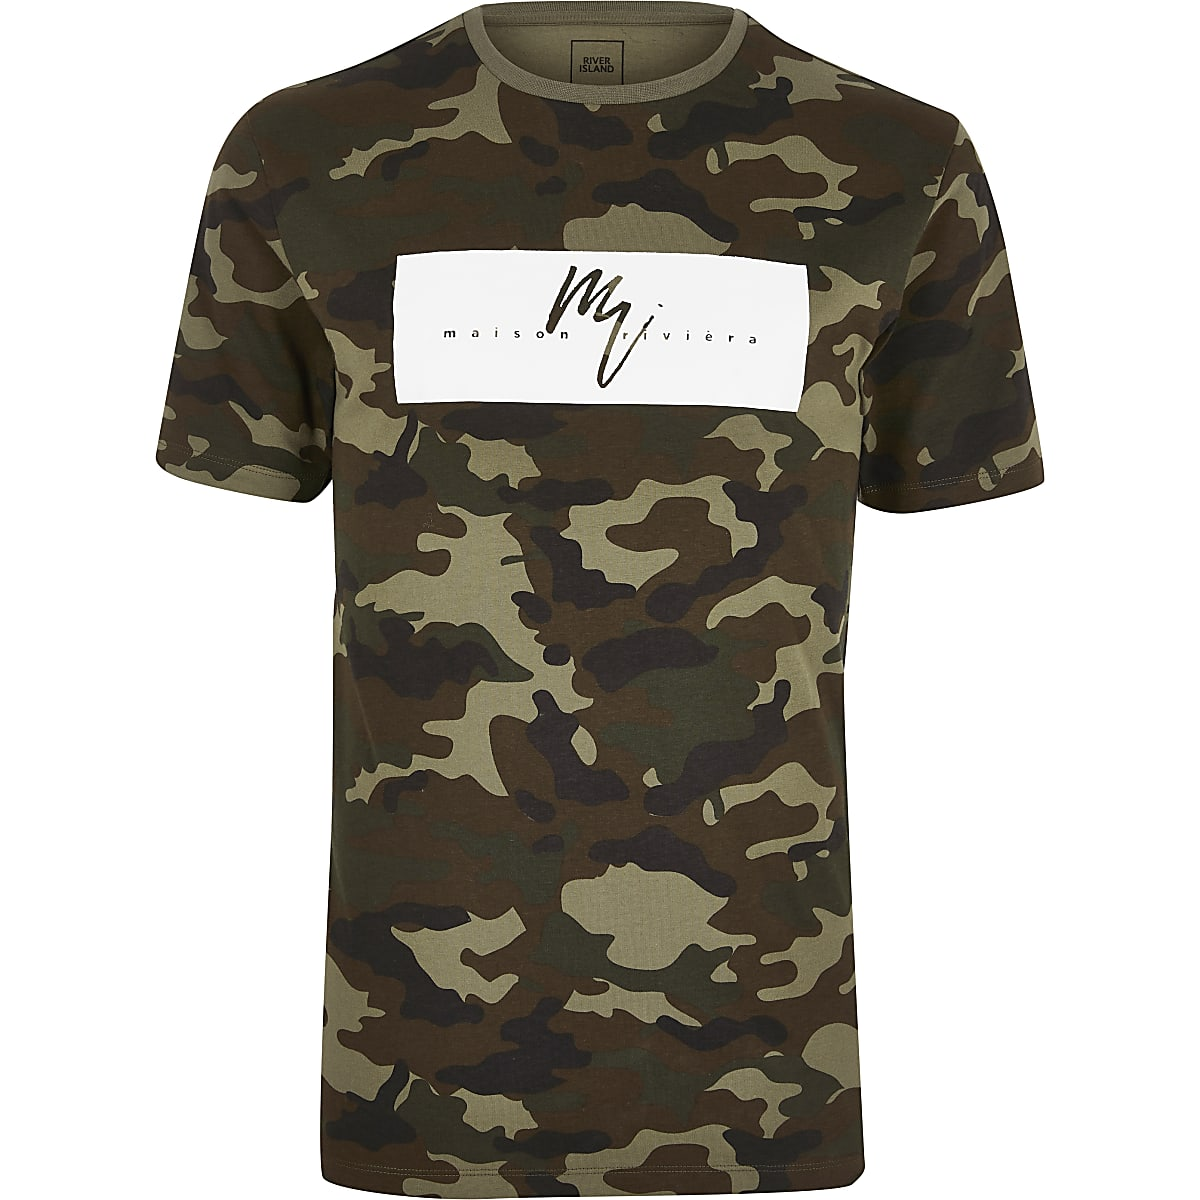 Green slim fit Maison Riviera camo T shirt